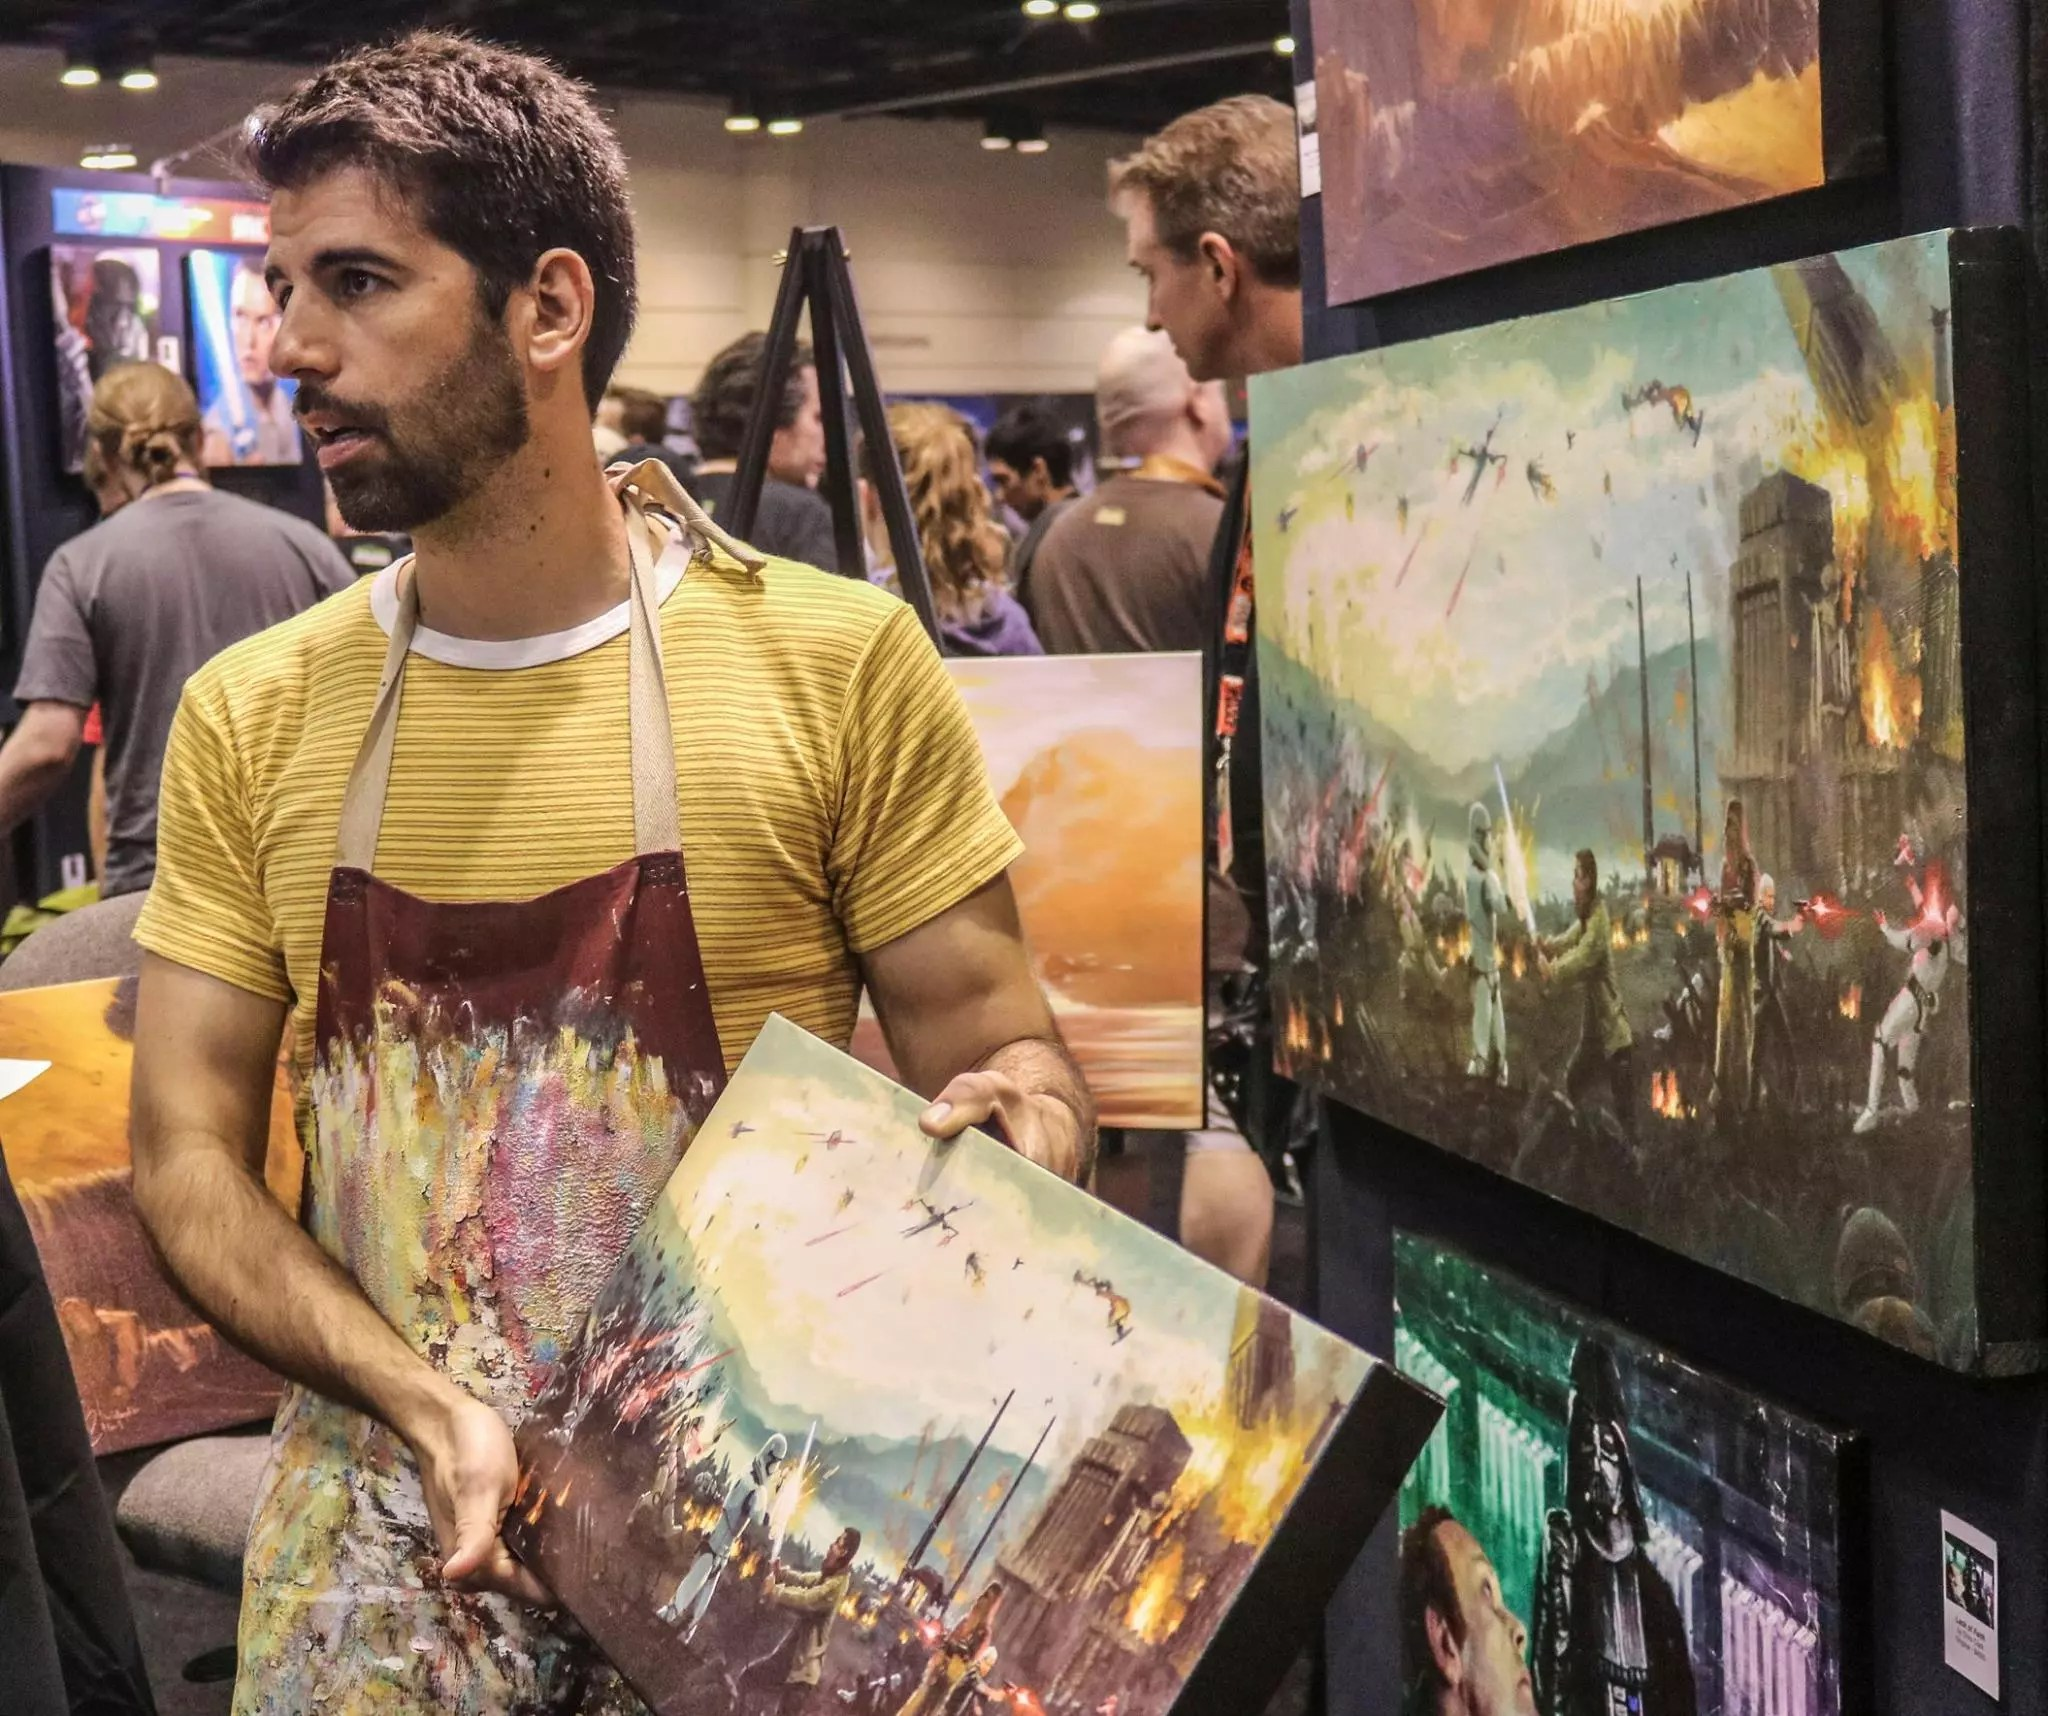 A look at some of the featured art work and artists at Star Wars Celebration Orlando